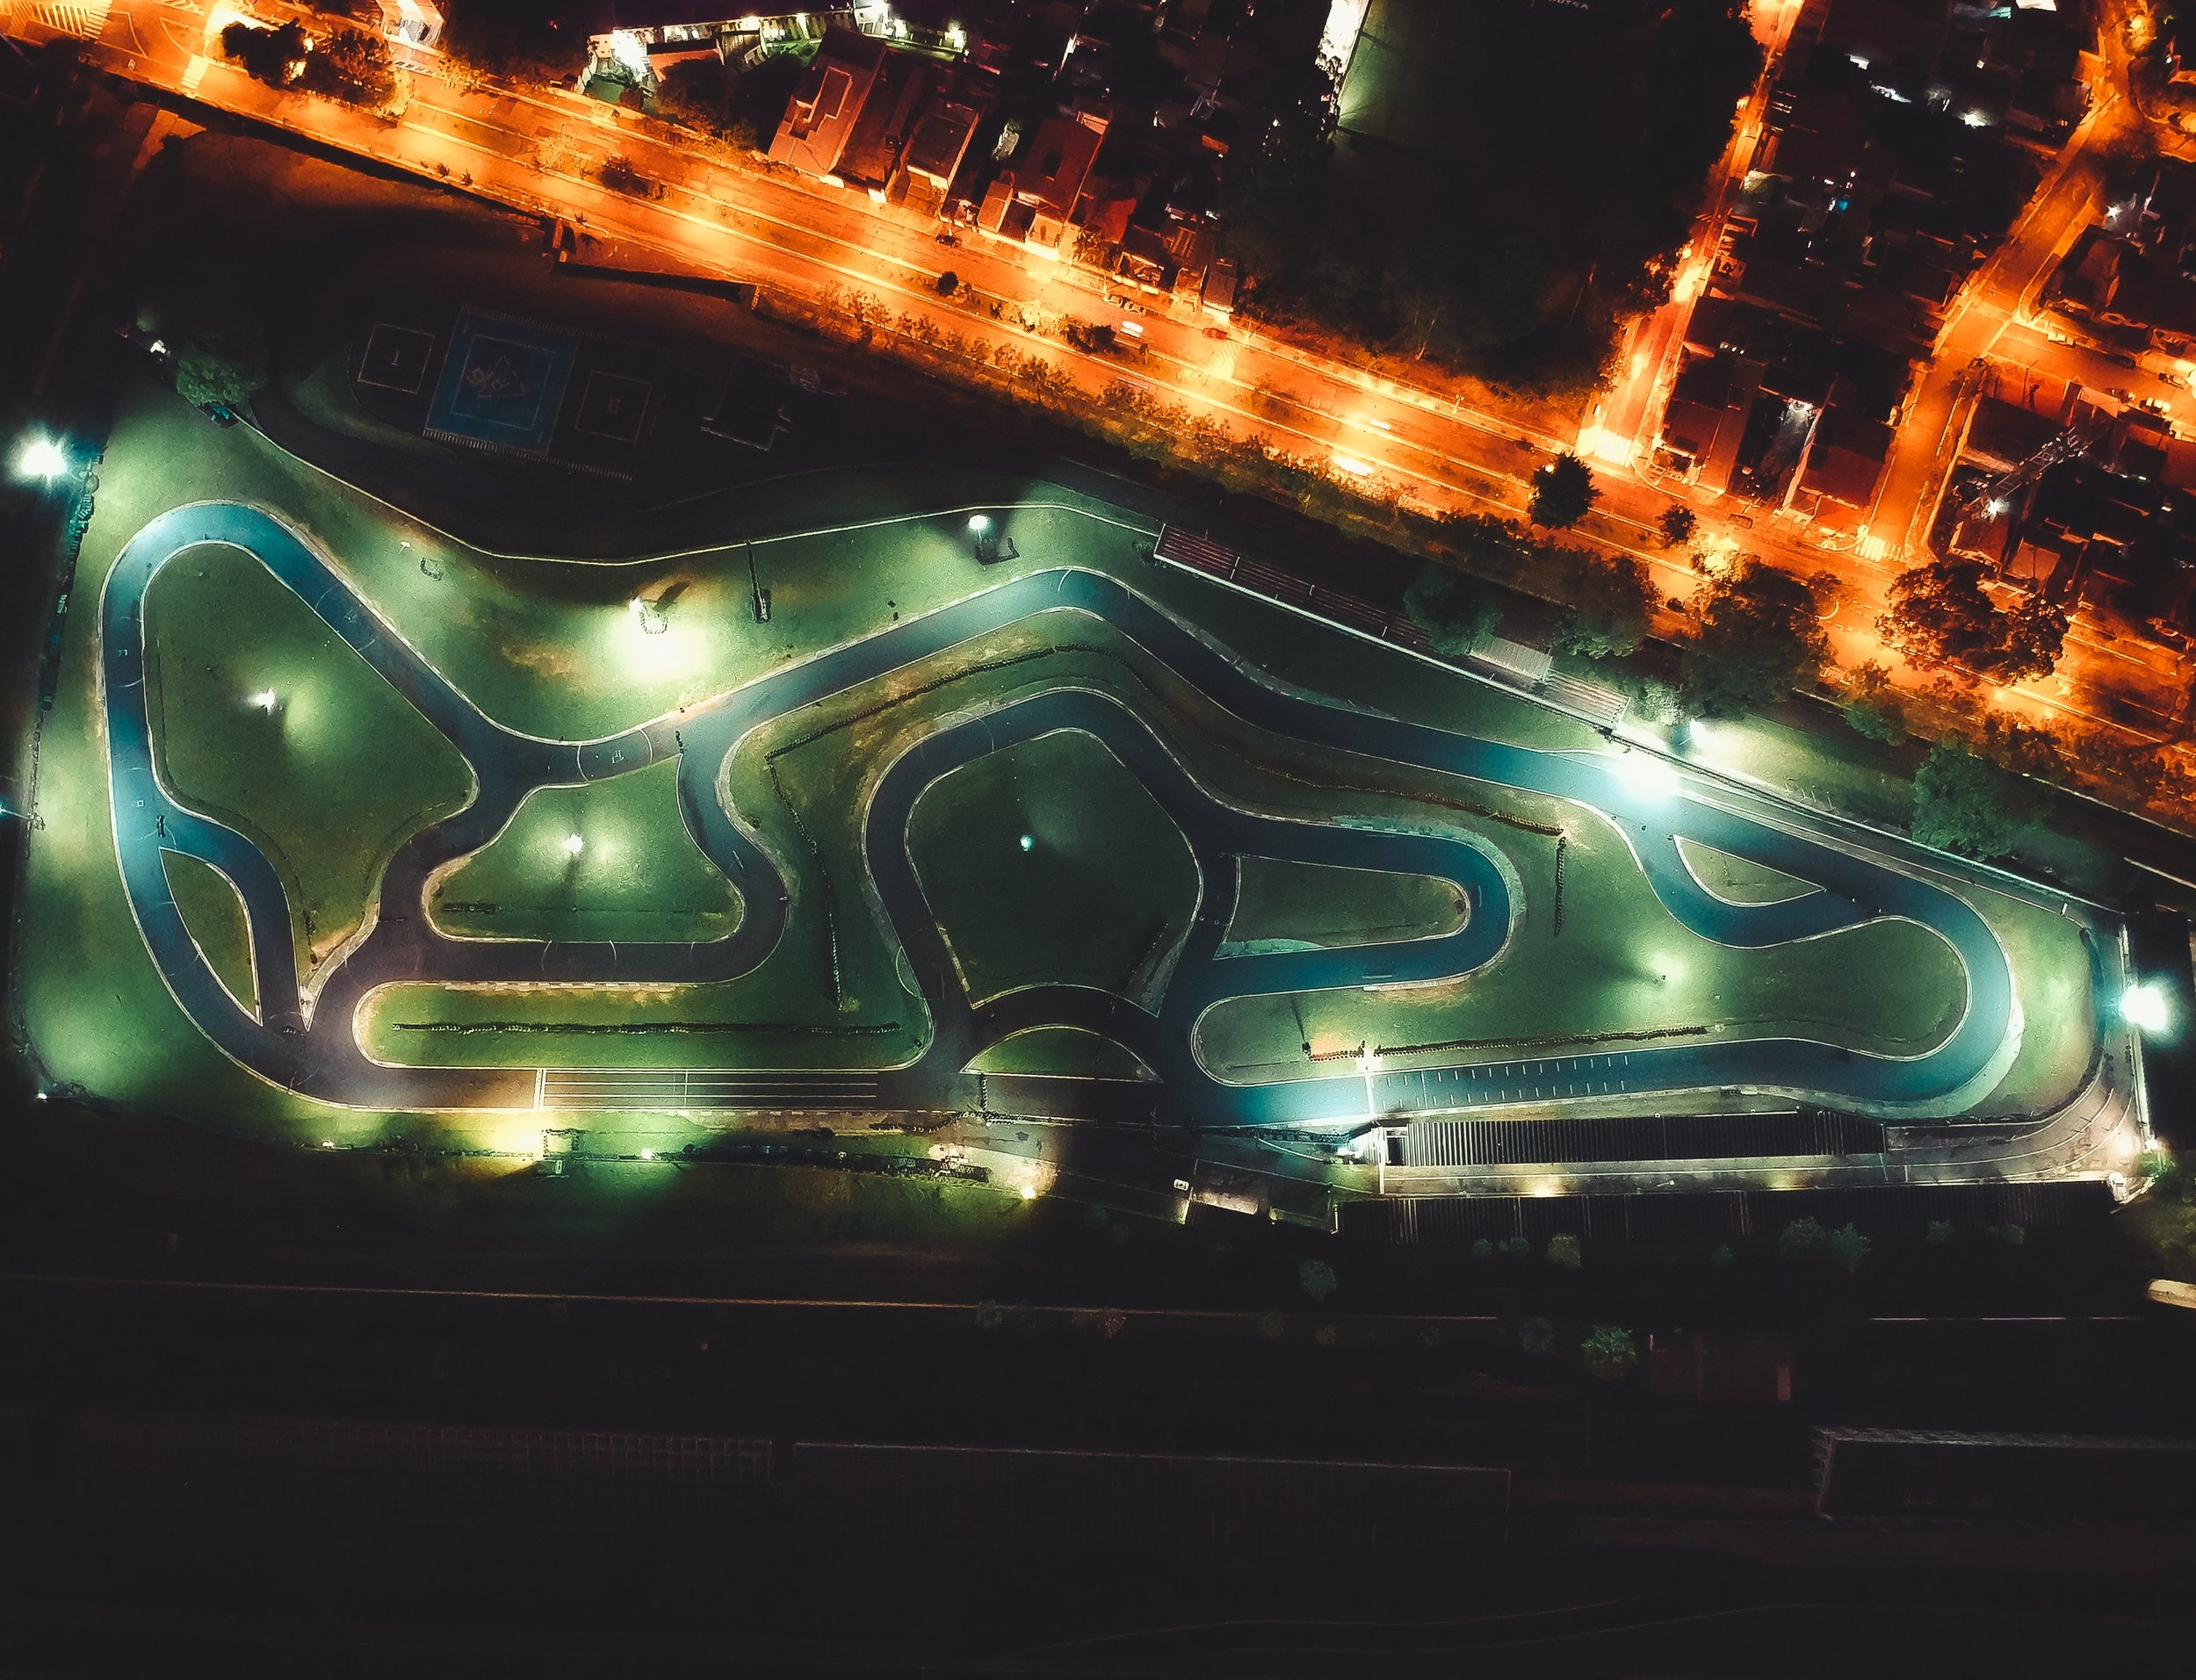 architecture-bird-s-eye-view-colors-1779484.jpg